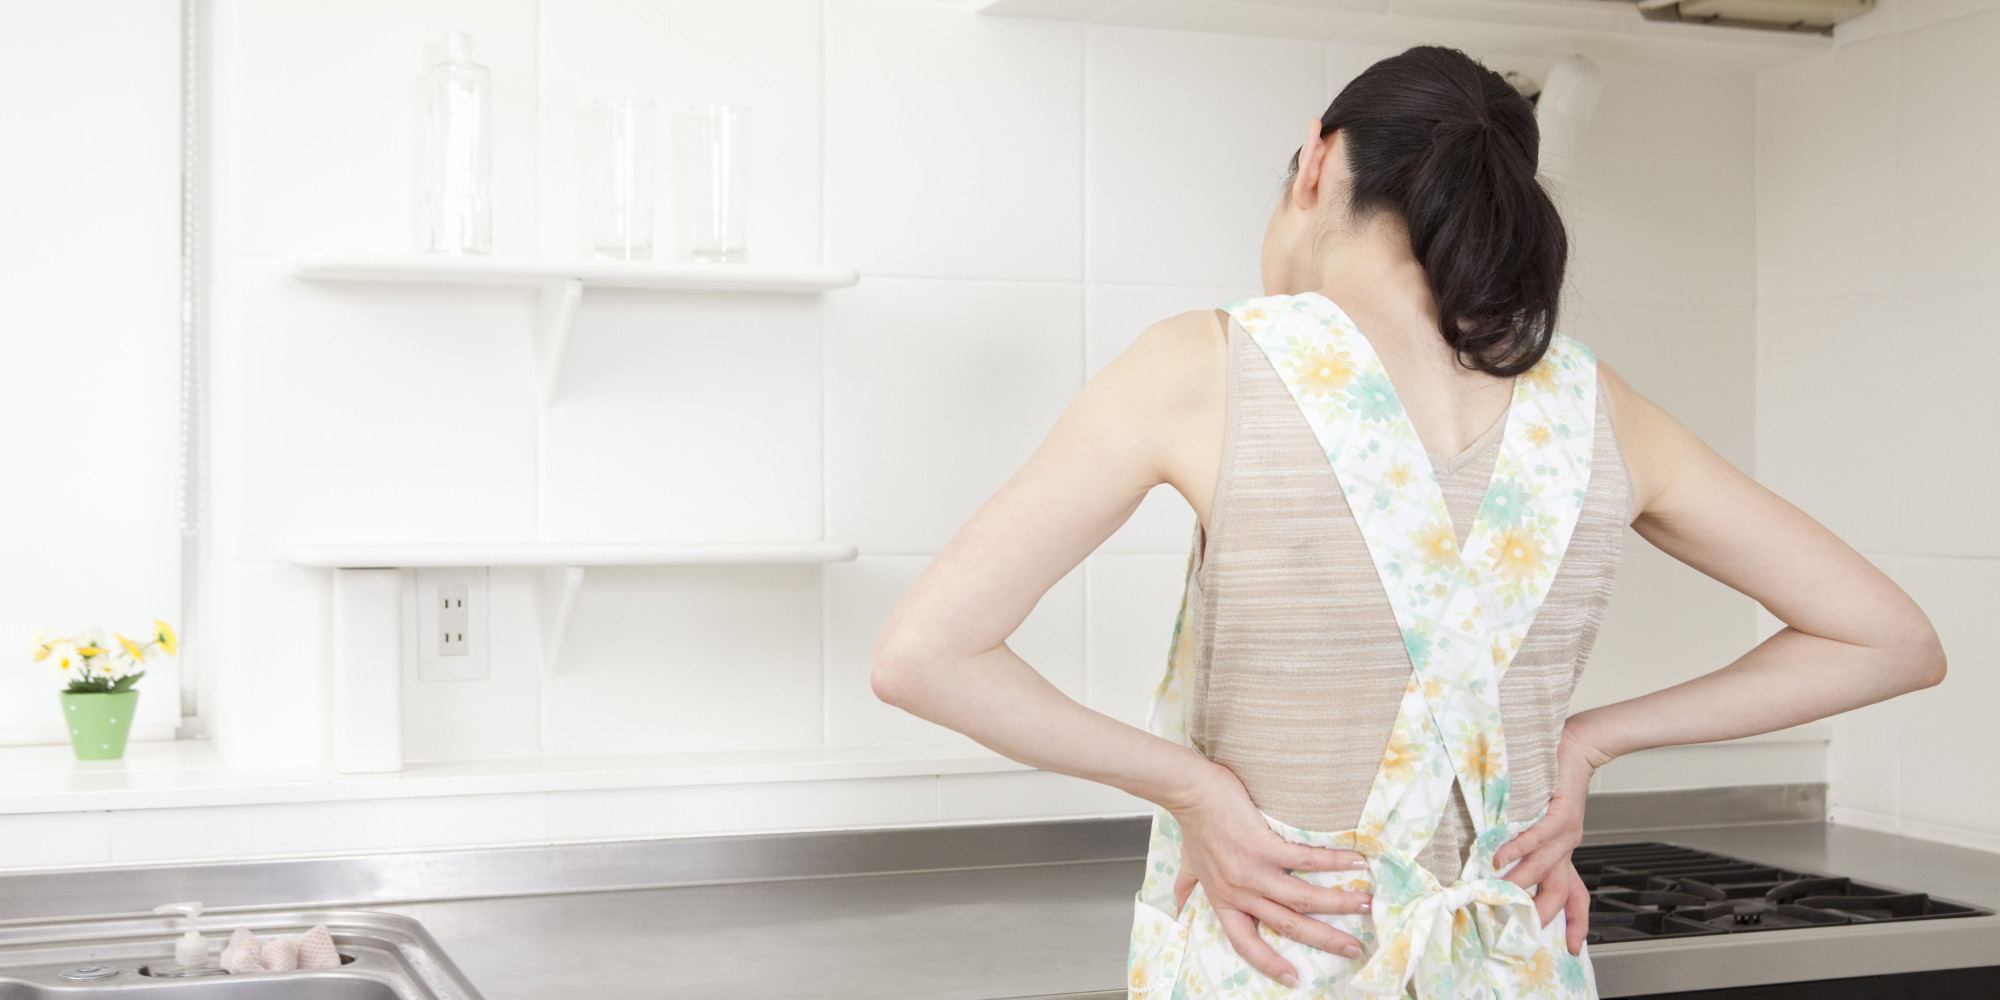 3 Natural Ways to Relieve Back Pain - Upper Cervical Awareness